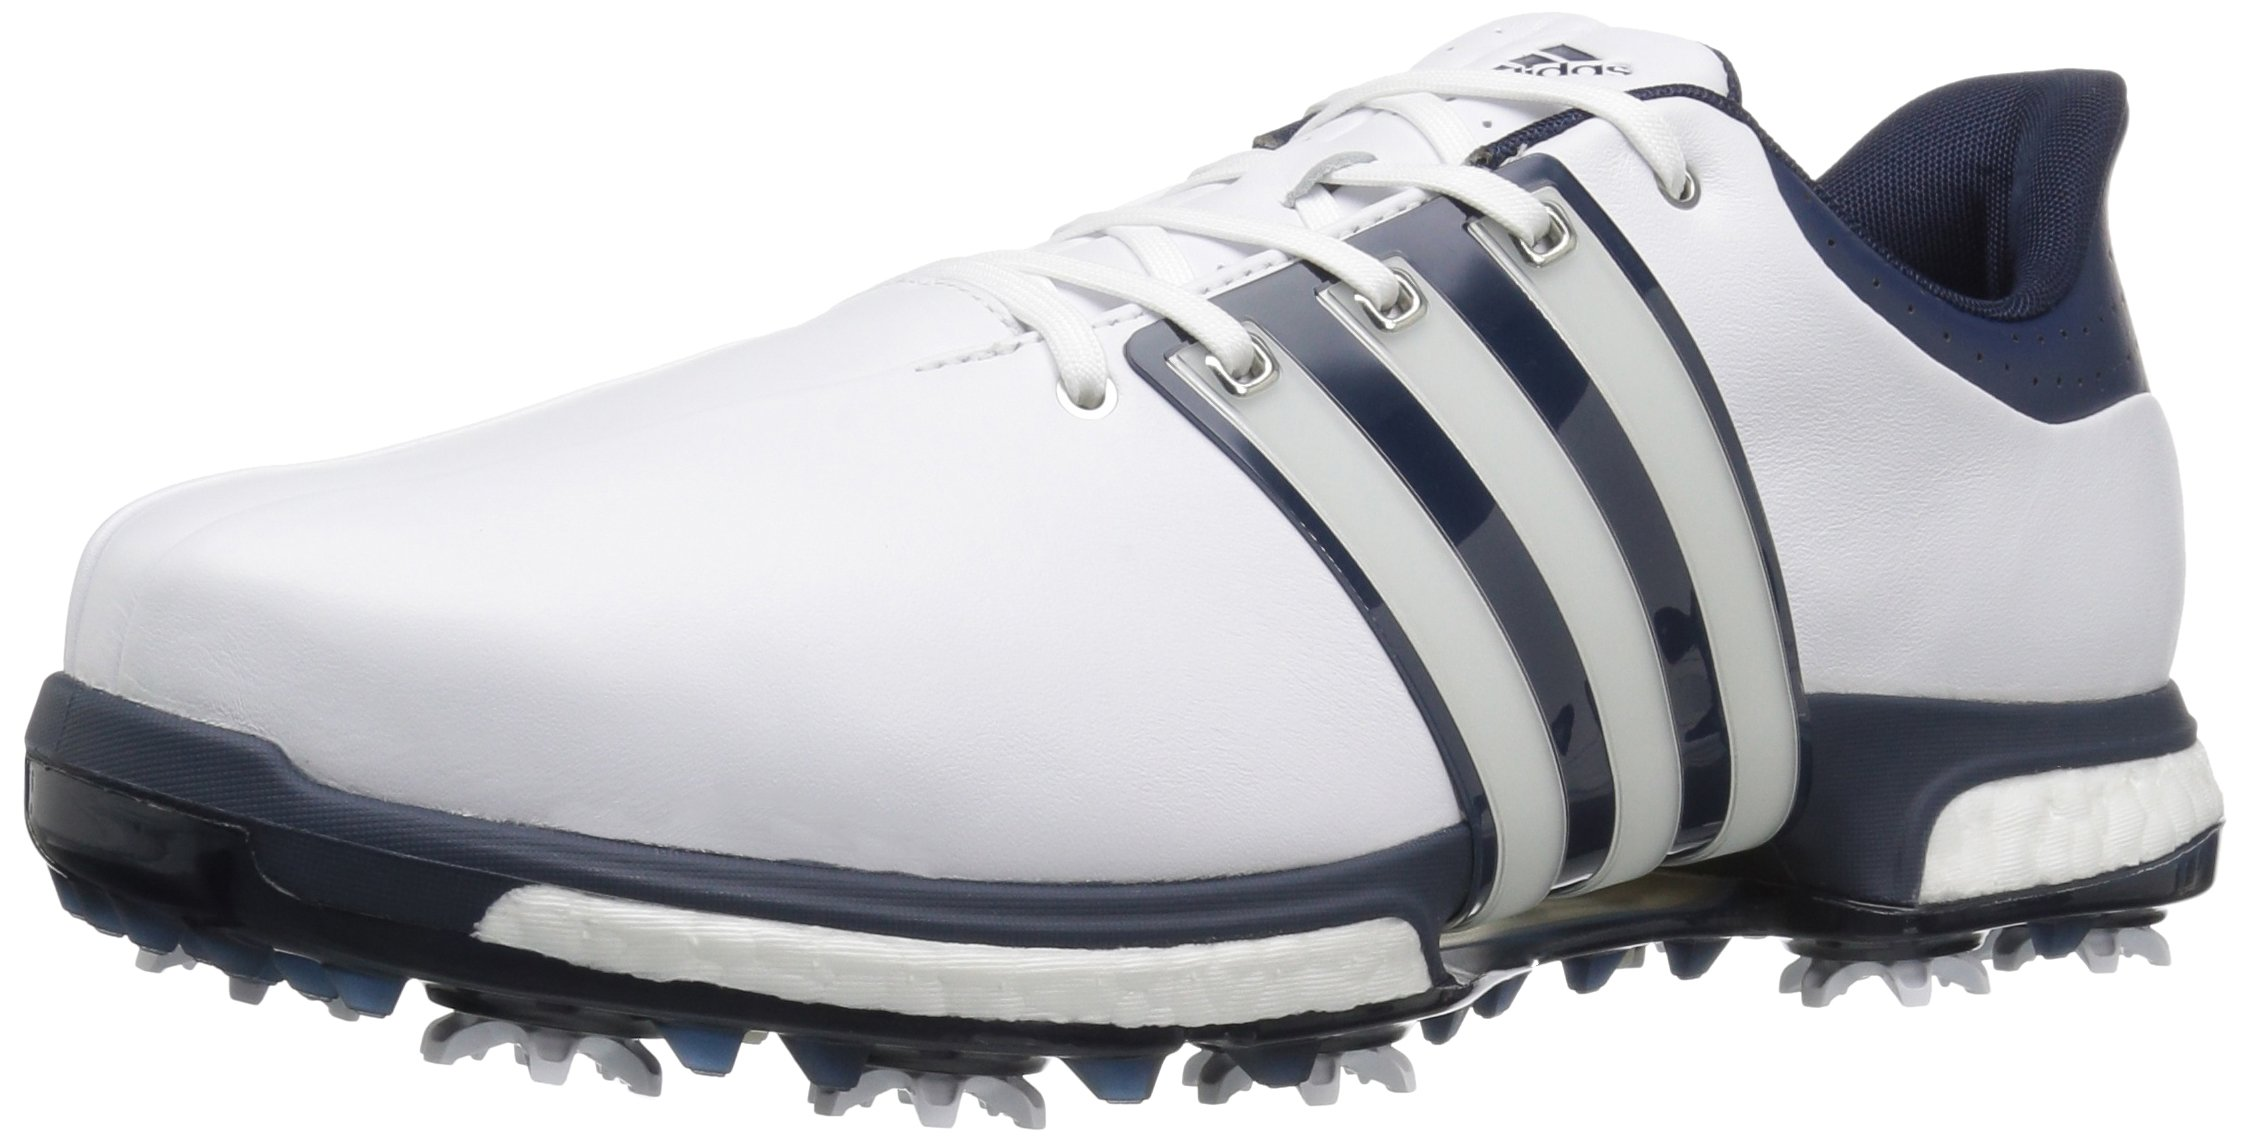 Golf Men S Tour360 Boost M Buy Online In Brunei Adidas Products In Brunei See Prices Reviews And Free Delivery Over Bnd100 Desertcart